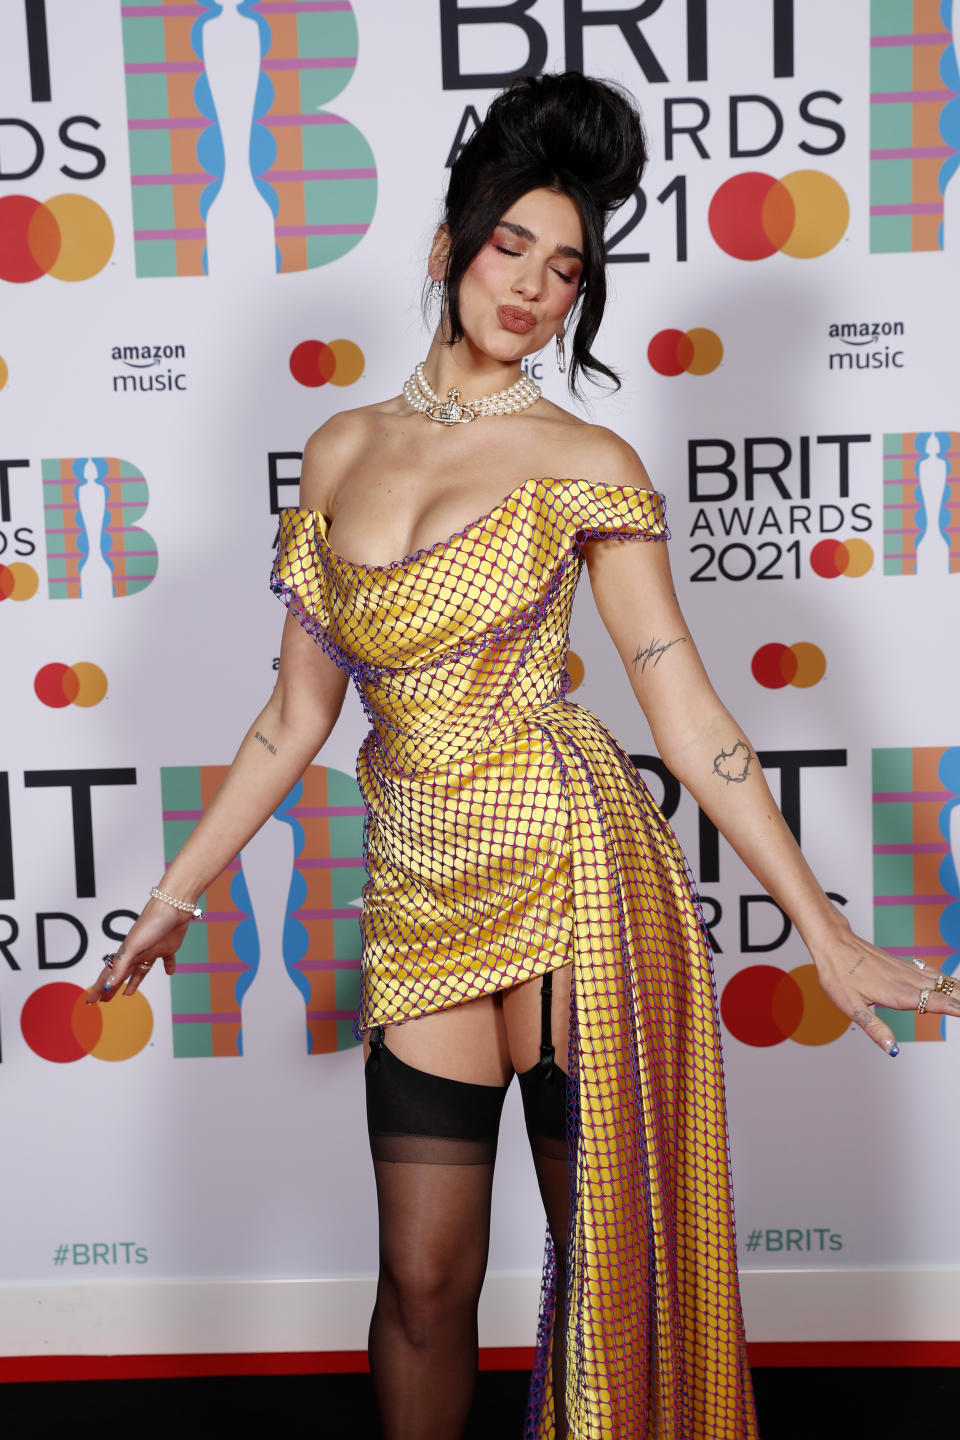 Dua Lipa poses in a yellow Vivienne Westwood mini dress with a train in the media room during The BRIT Awards 2021 at The O2 Arena on May 11, 2021 in London, England